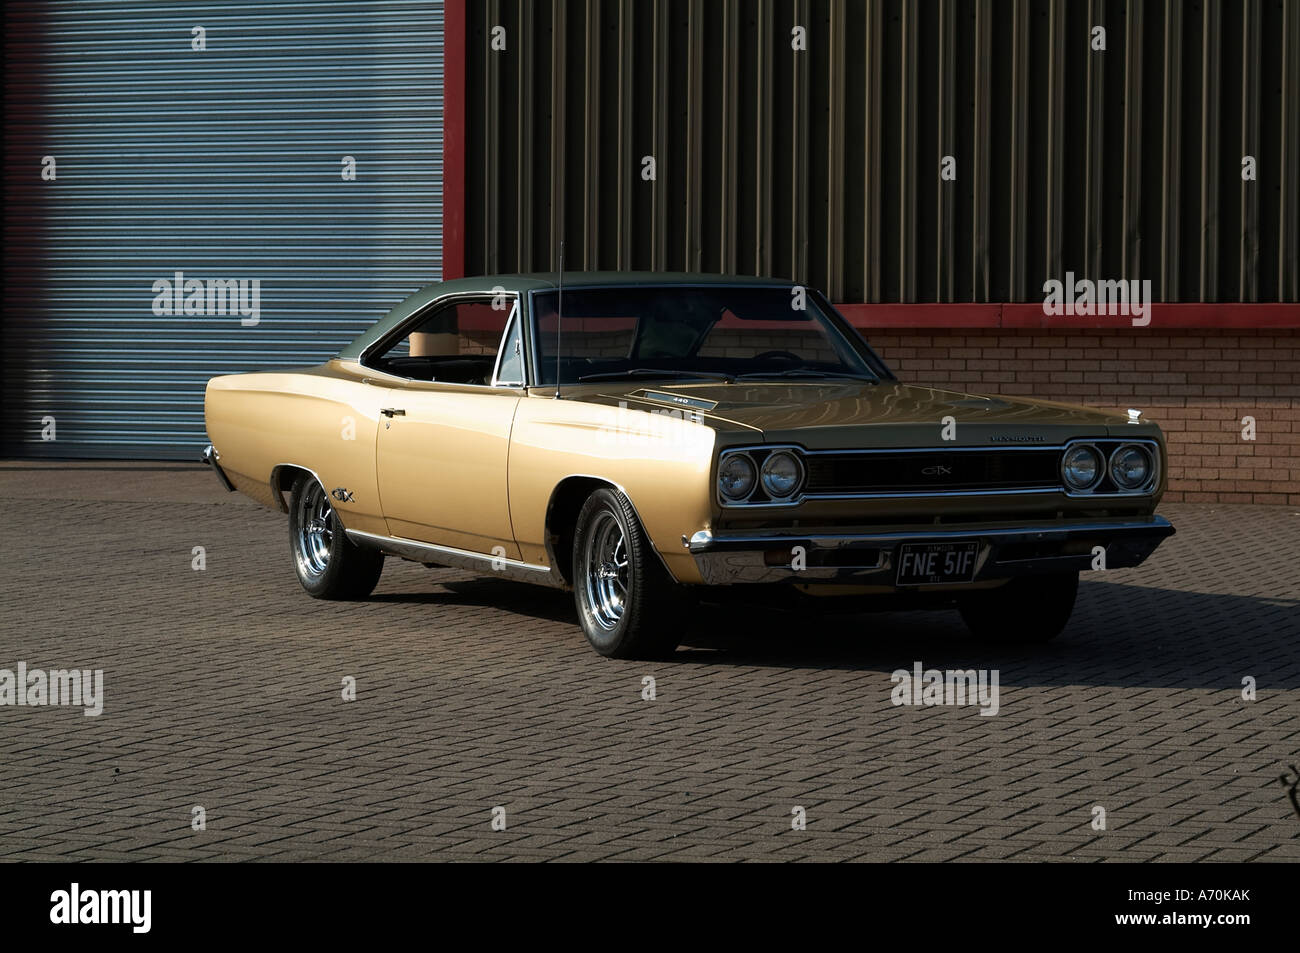 1968 Plymouth Gtx Classic Muscle Car American Vintage Styling High